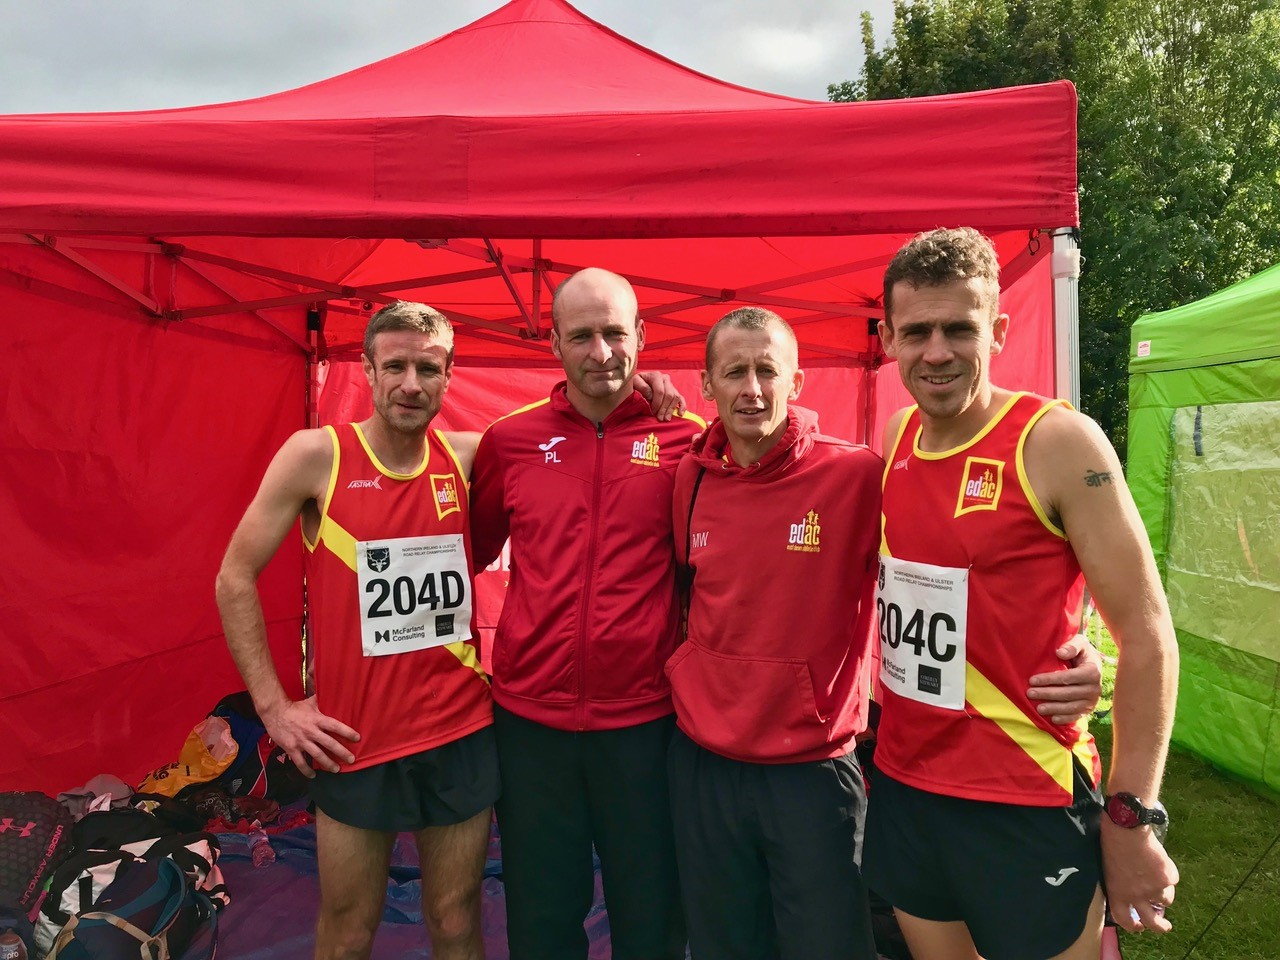 Neil Curran, Paul Lloyd, Martin Willcox and Davy Foster - Masters A Team